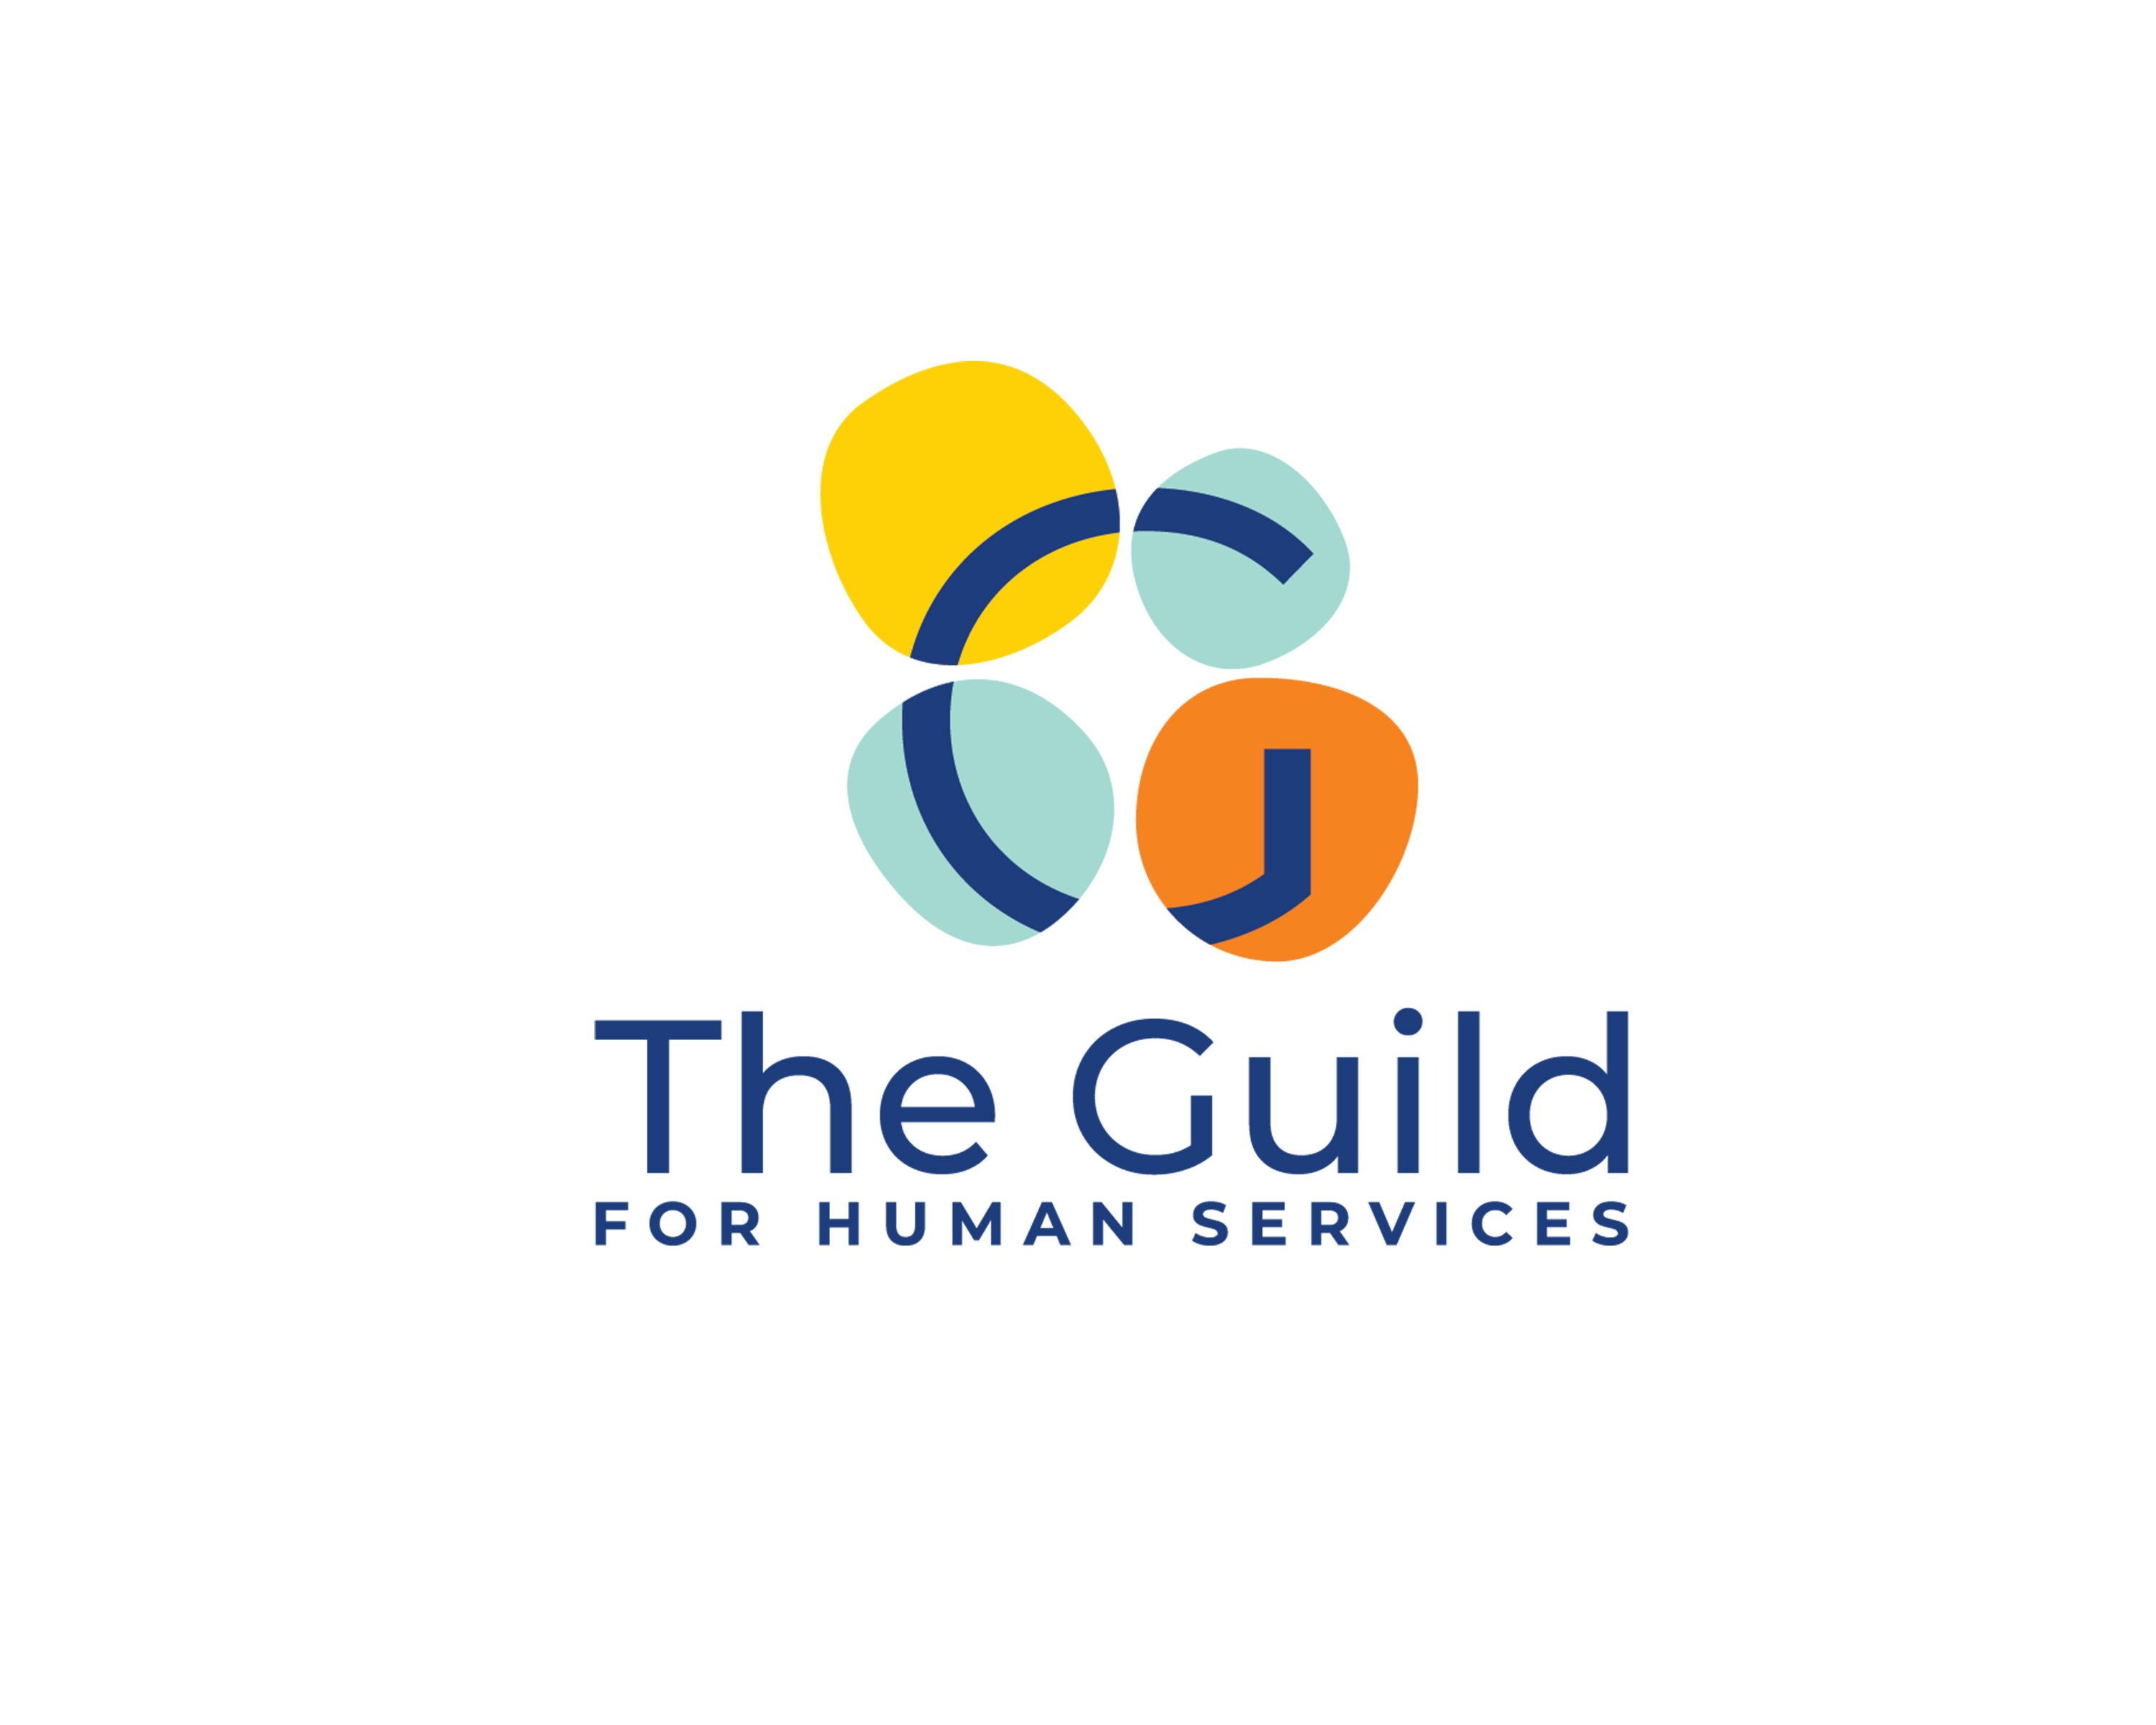 The Guild unveiled its new logo.